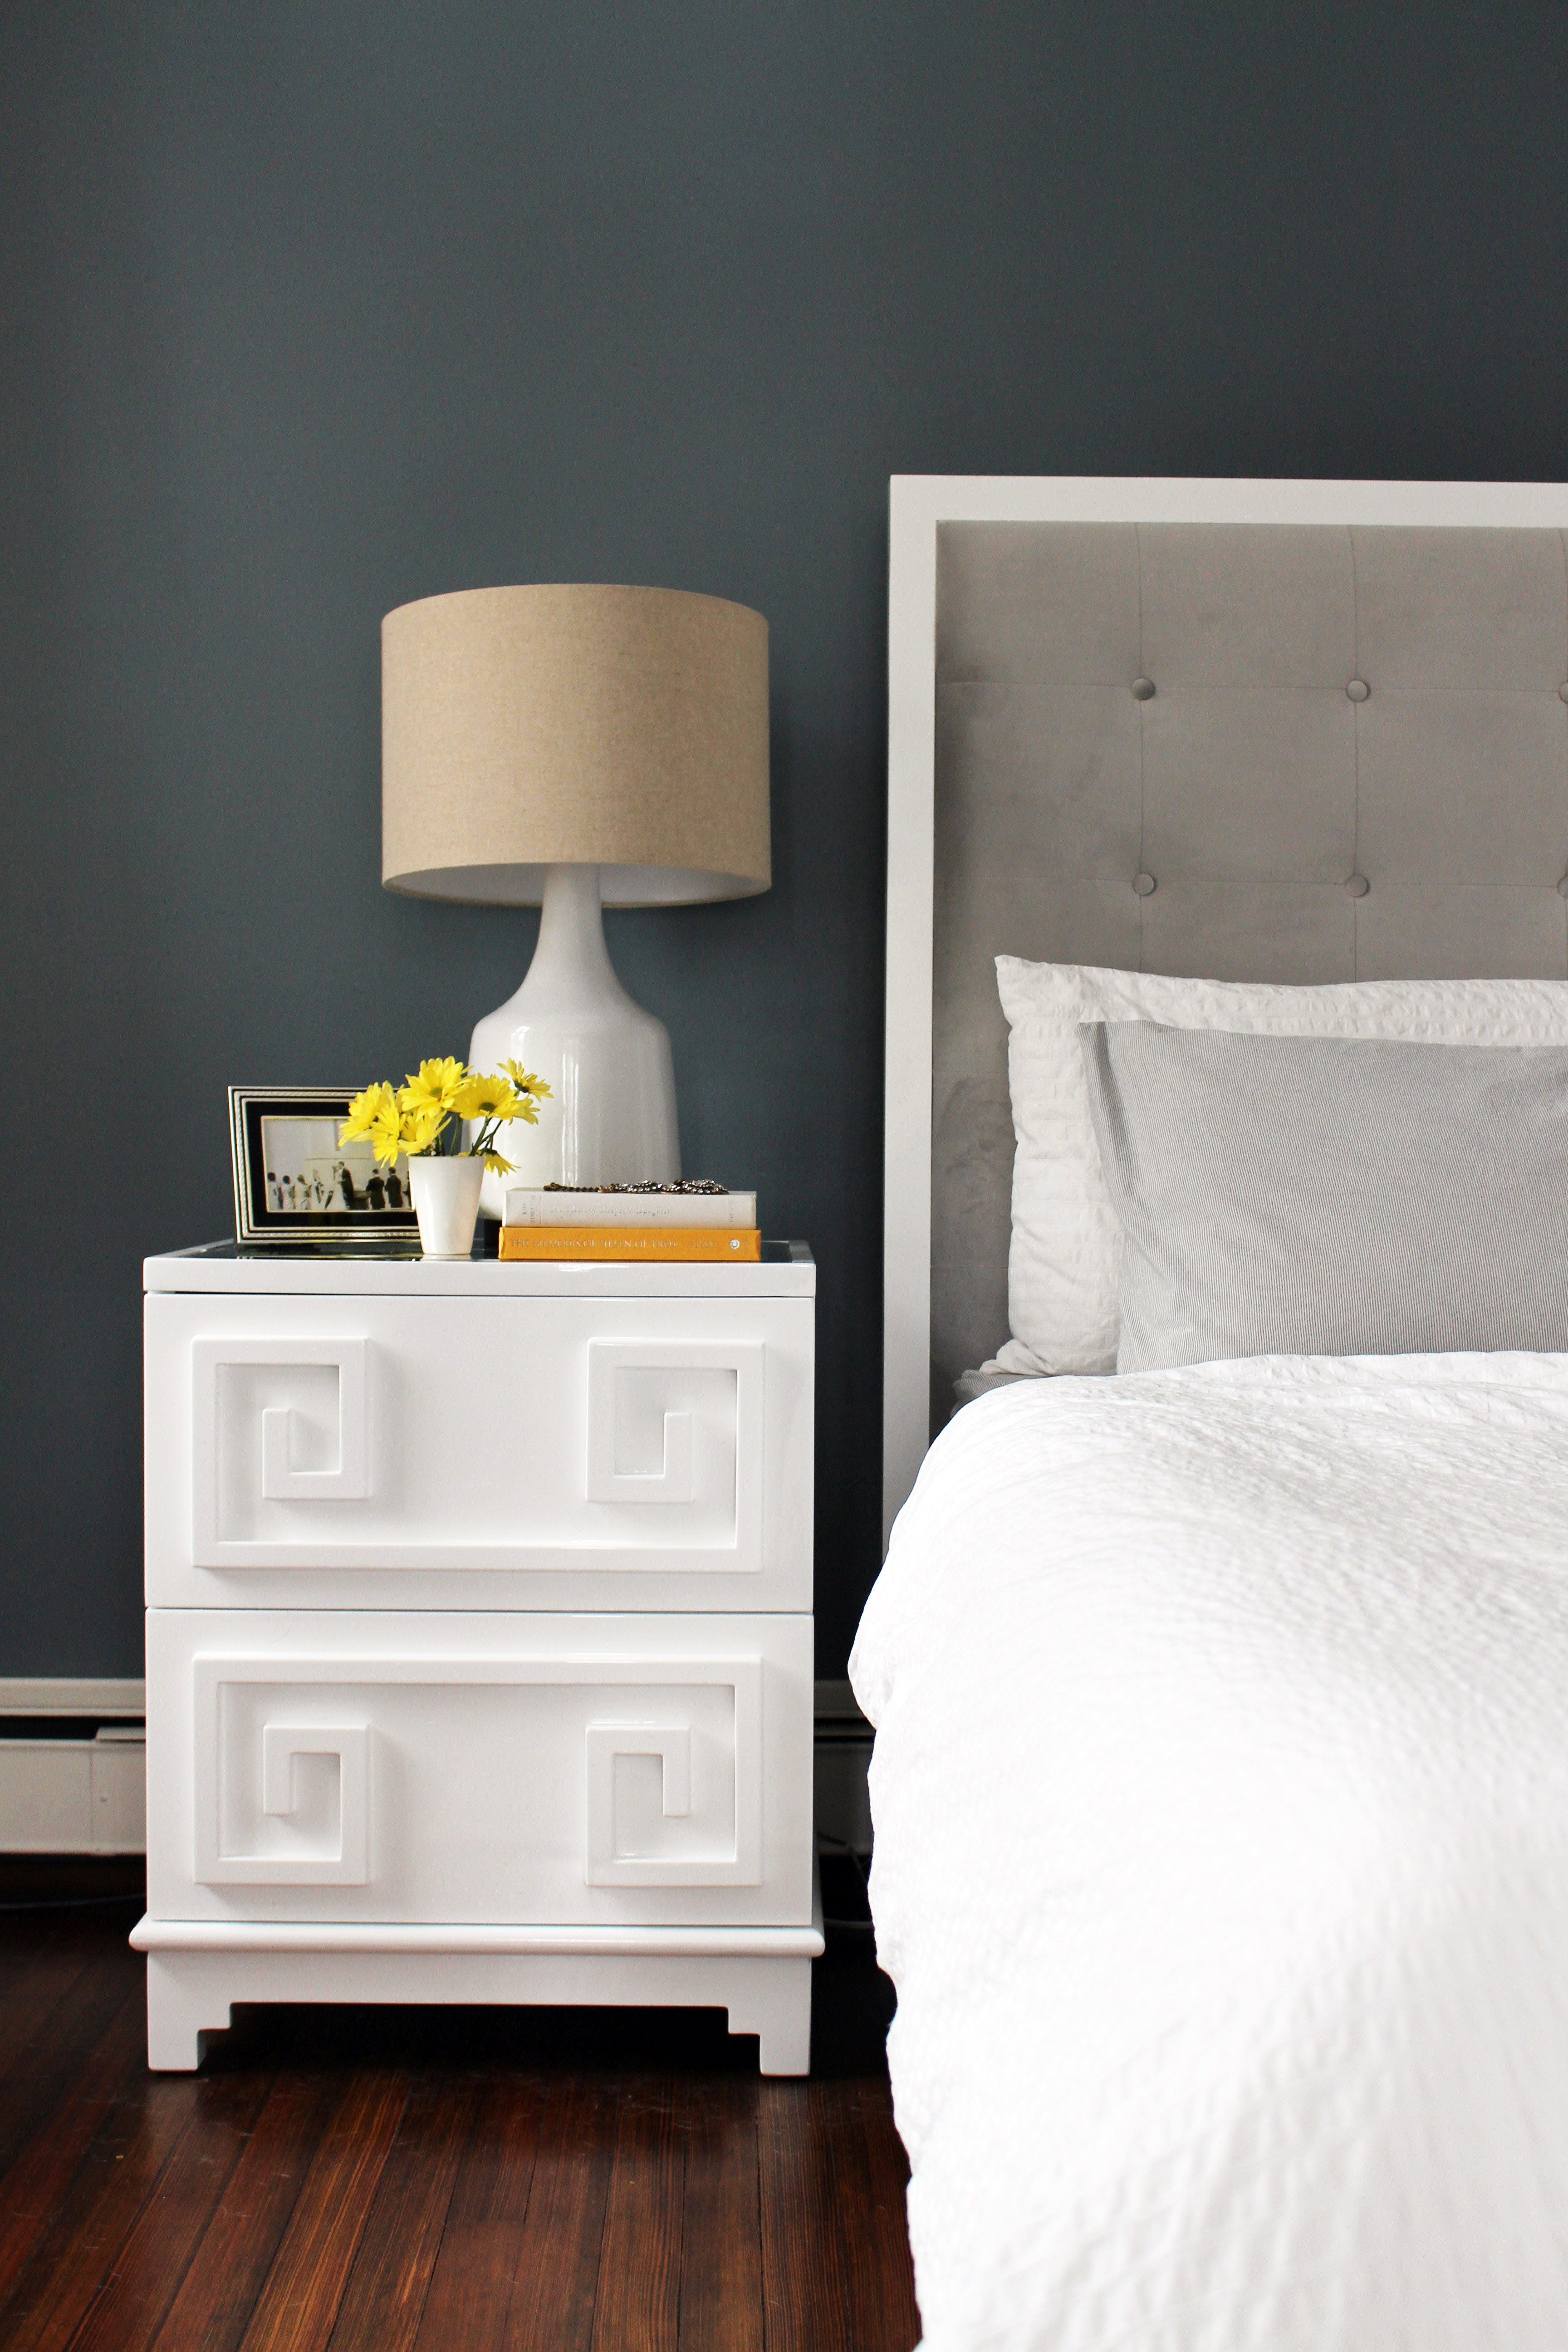 custom upholstered velvet headboard with white lacquer bedside